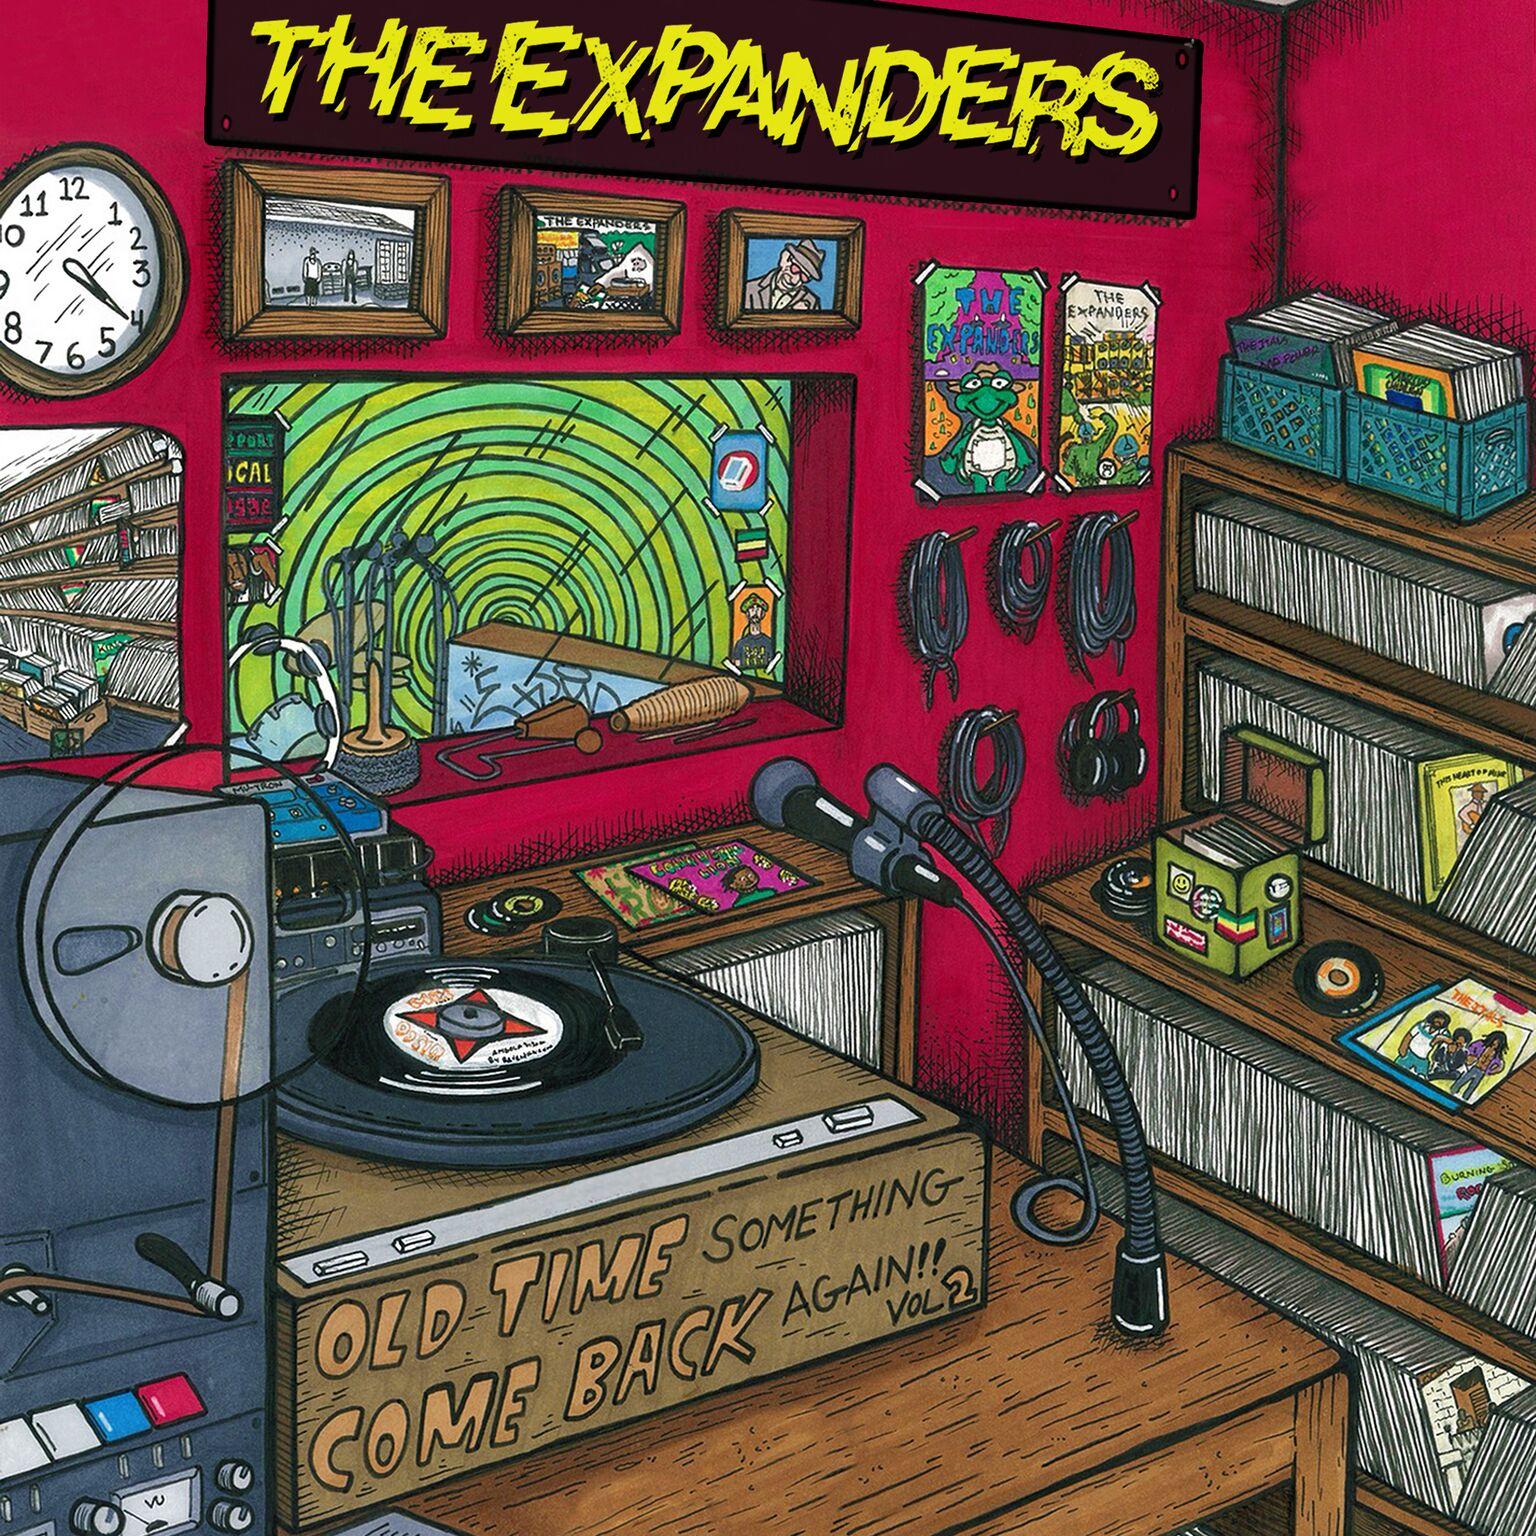 The Expanders Drop New Album, Old Time Something Come Back Again, Vol. 2